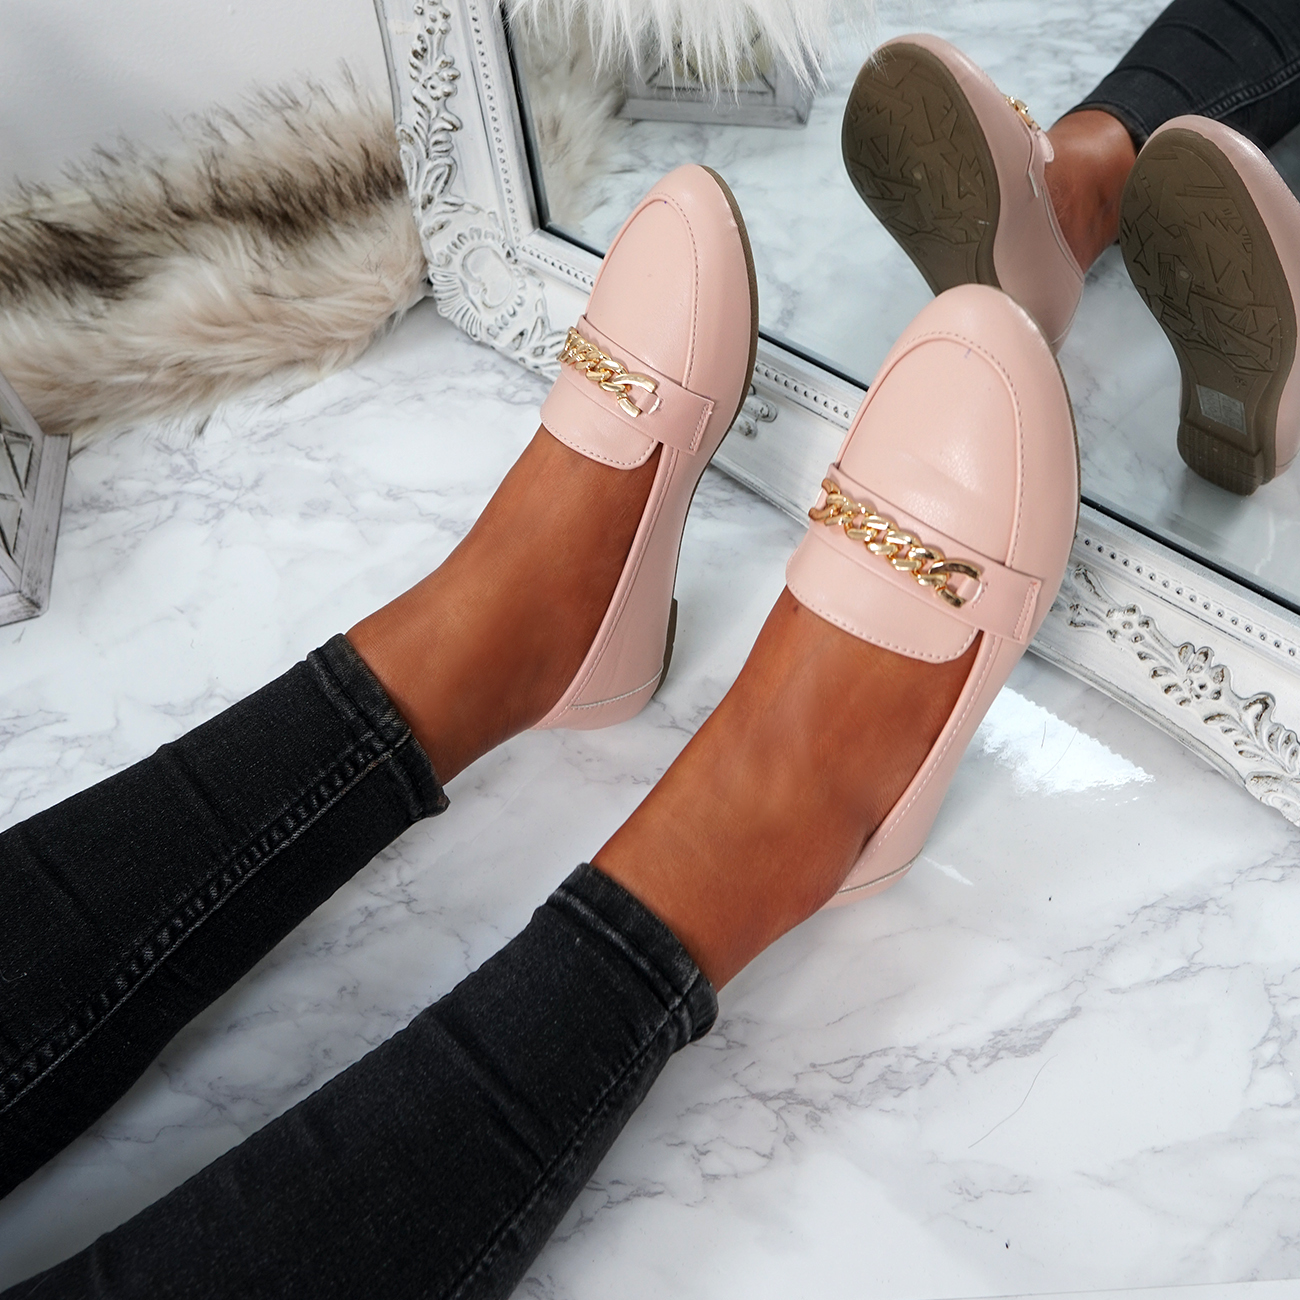 WOMENS-LADIES-CHAIN-SLIP-ON-BALLERINA-LOAFERS-BALLET-DOLLY-PUMPS-SHOES-SIZE thumbnail 34